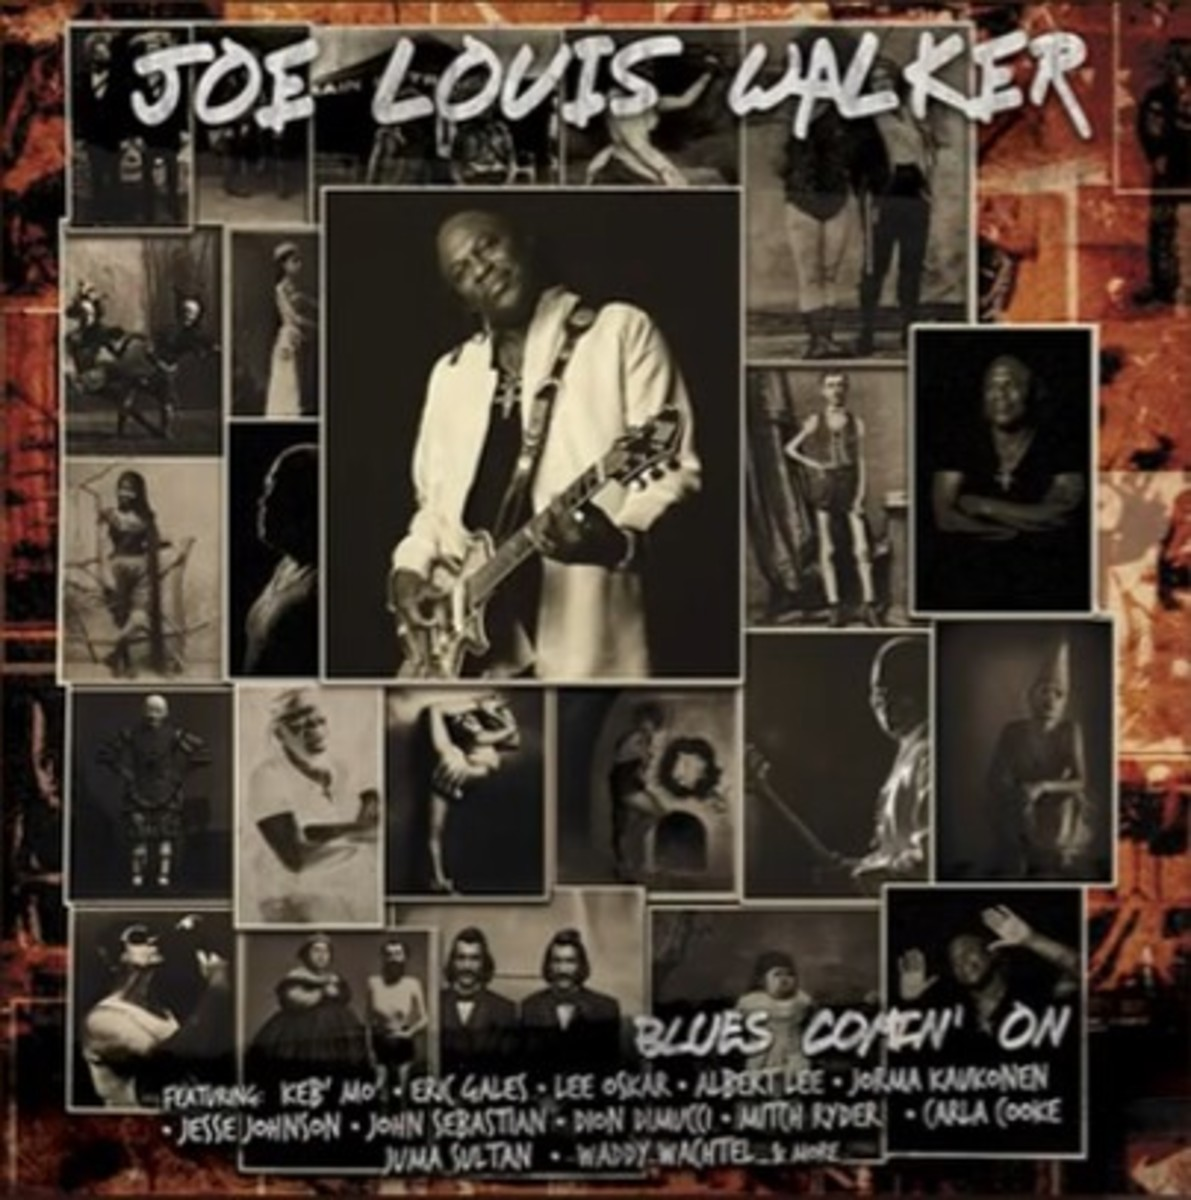 Joe Lewis Walker album